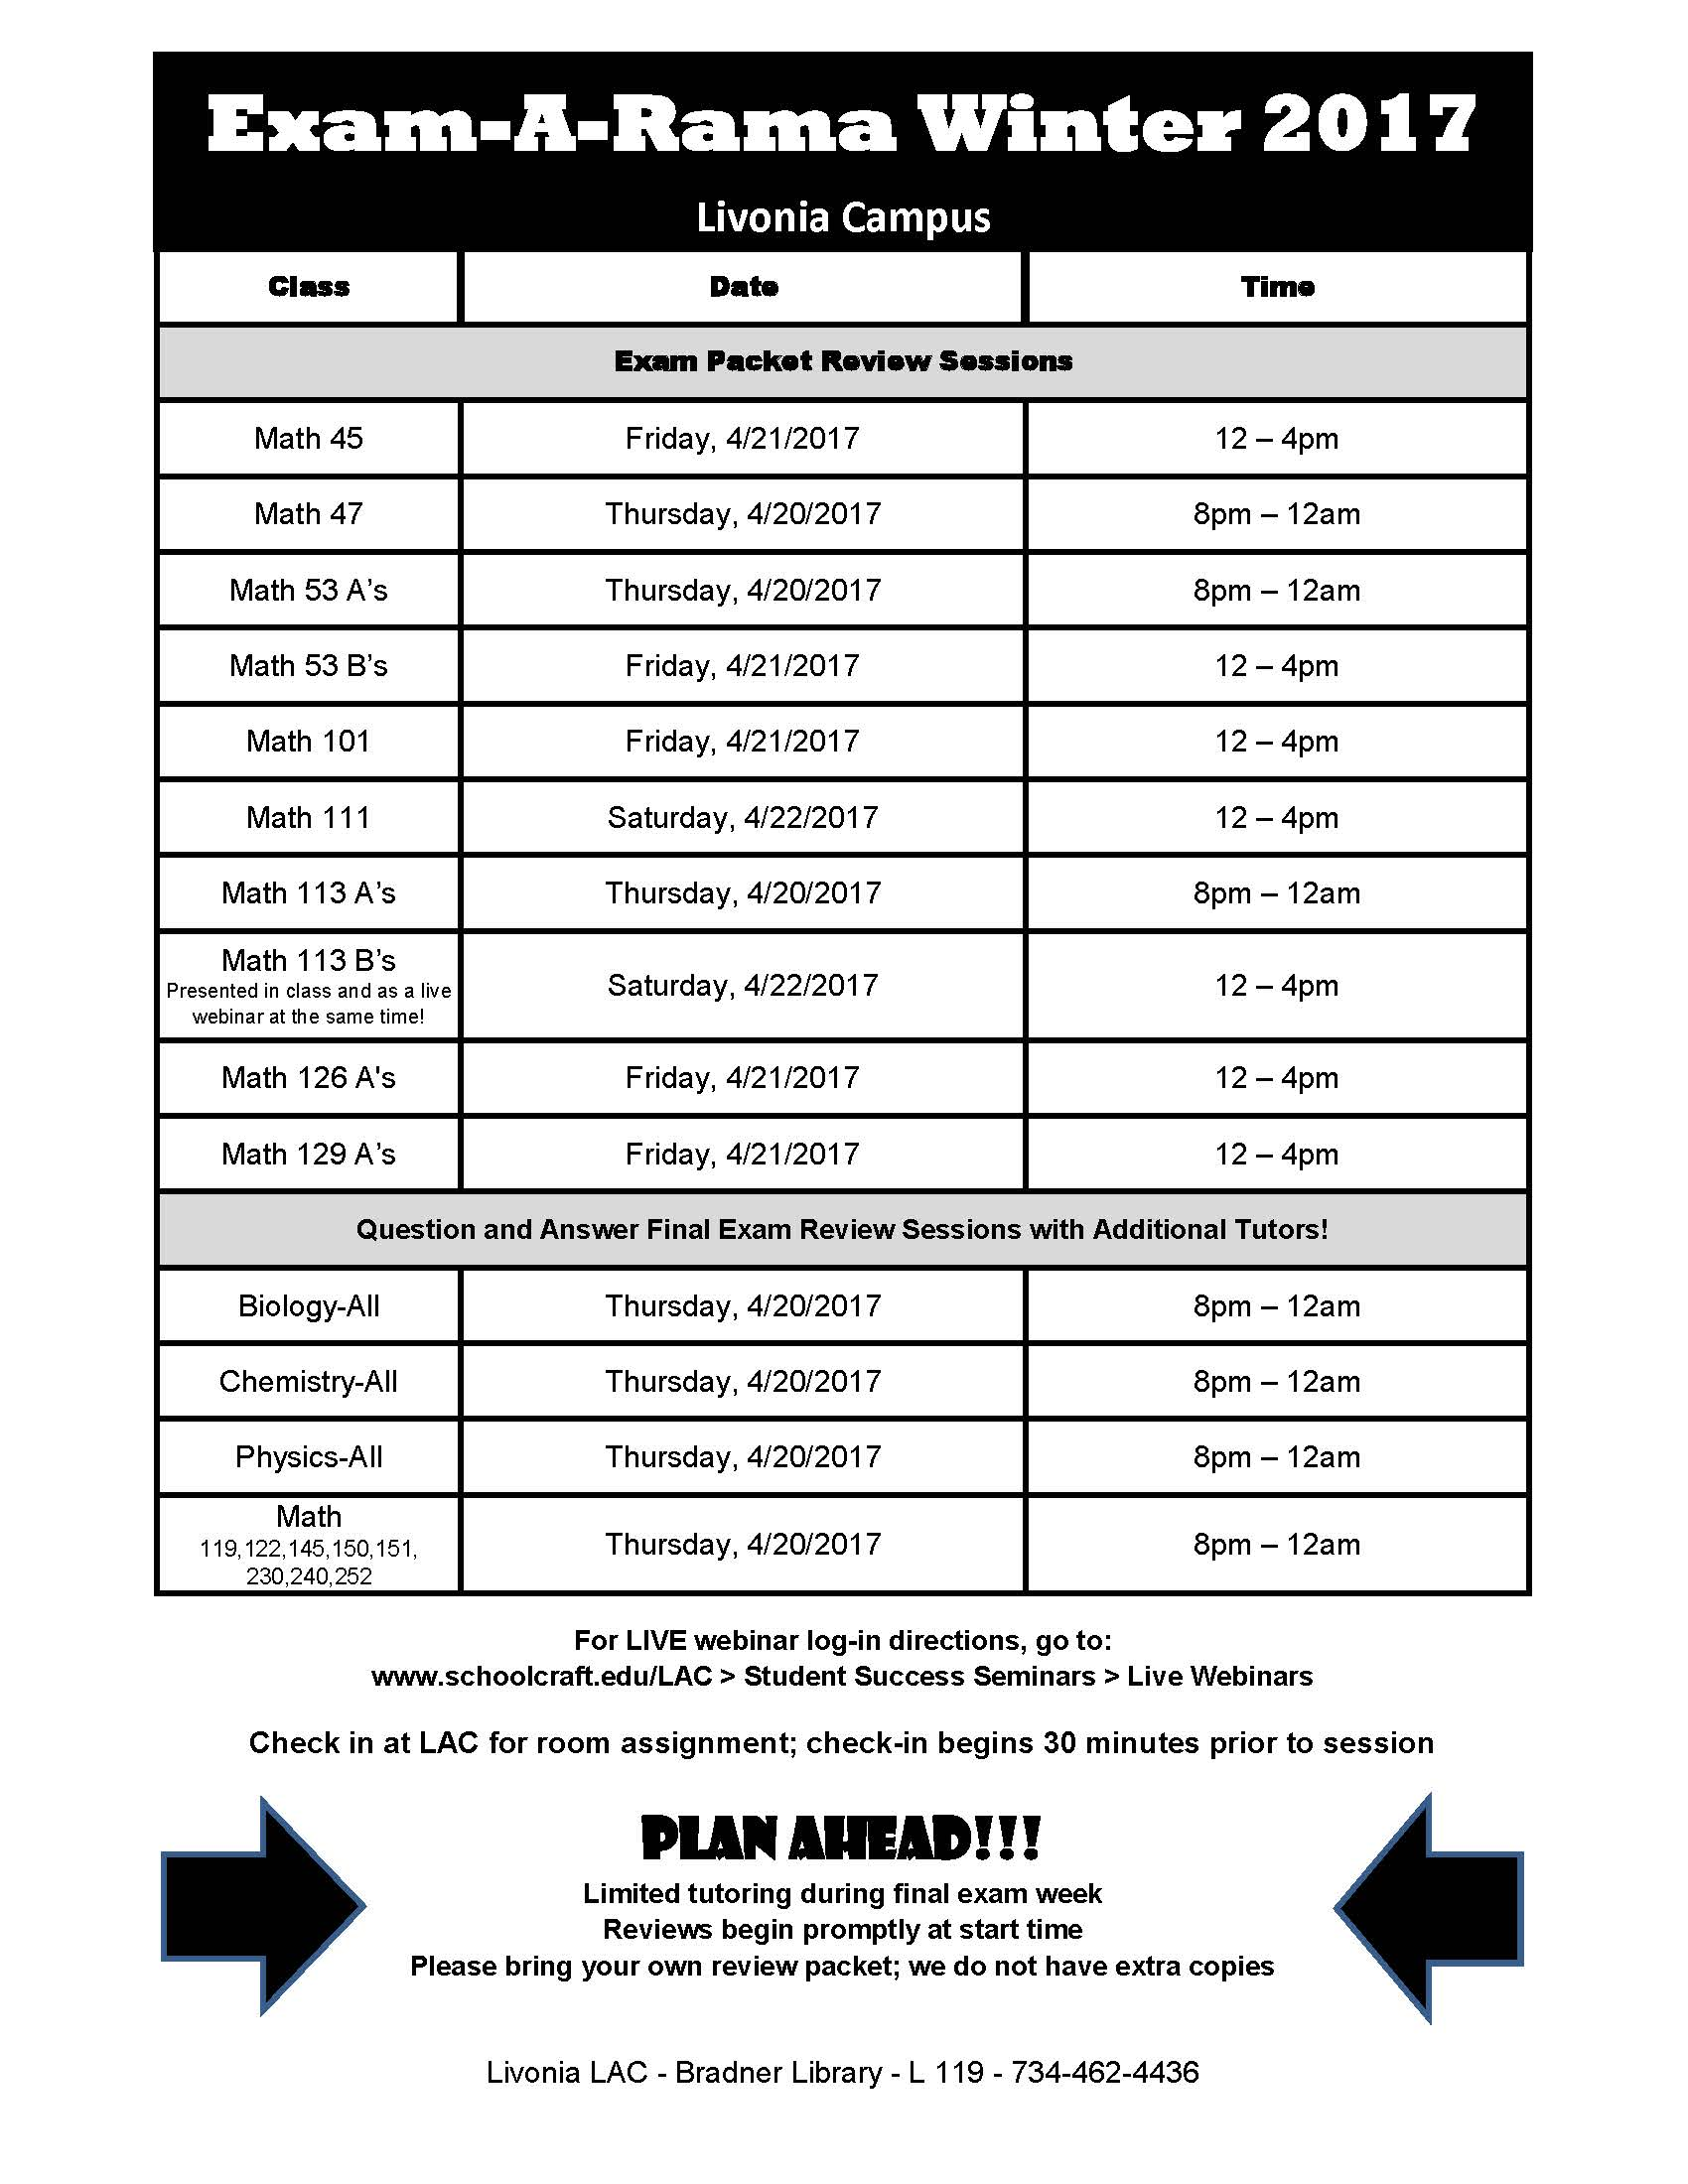 Winter 2017 Exam-A-Rama Schedule